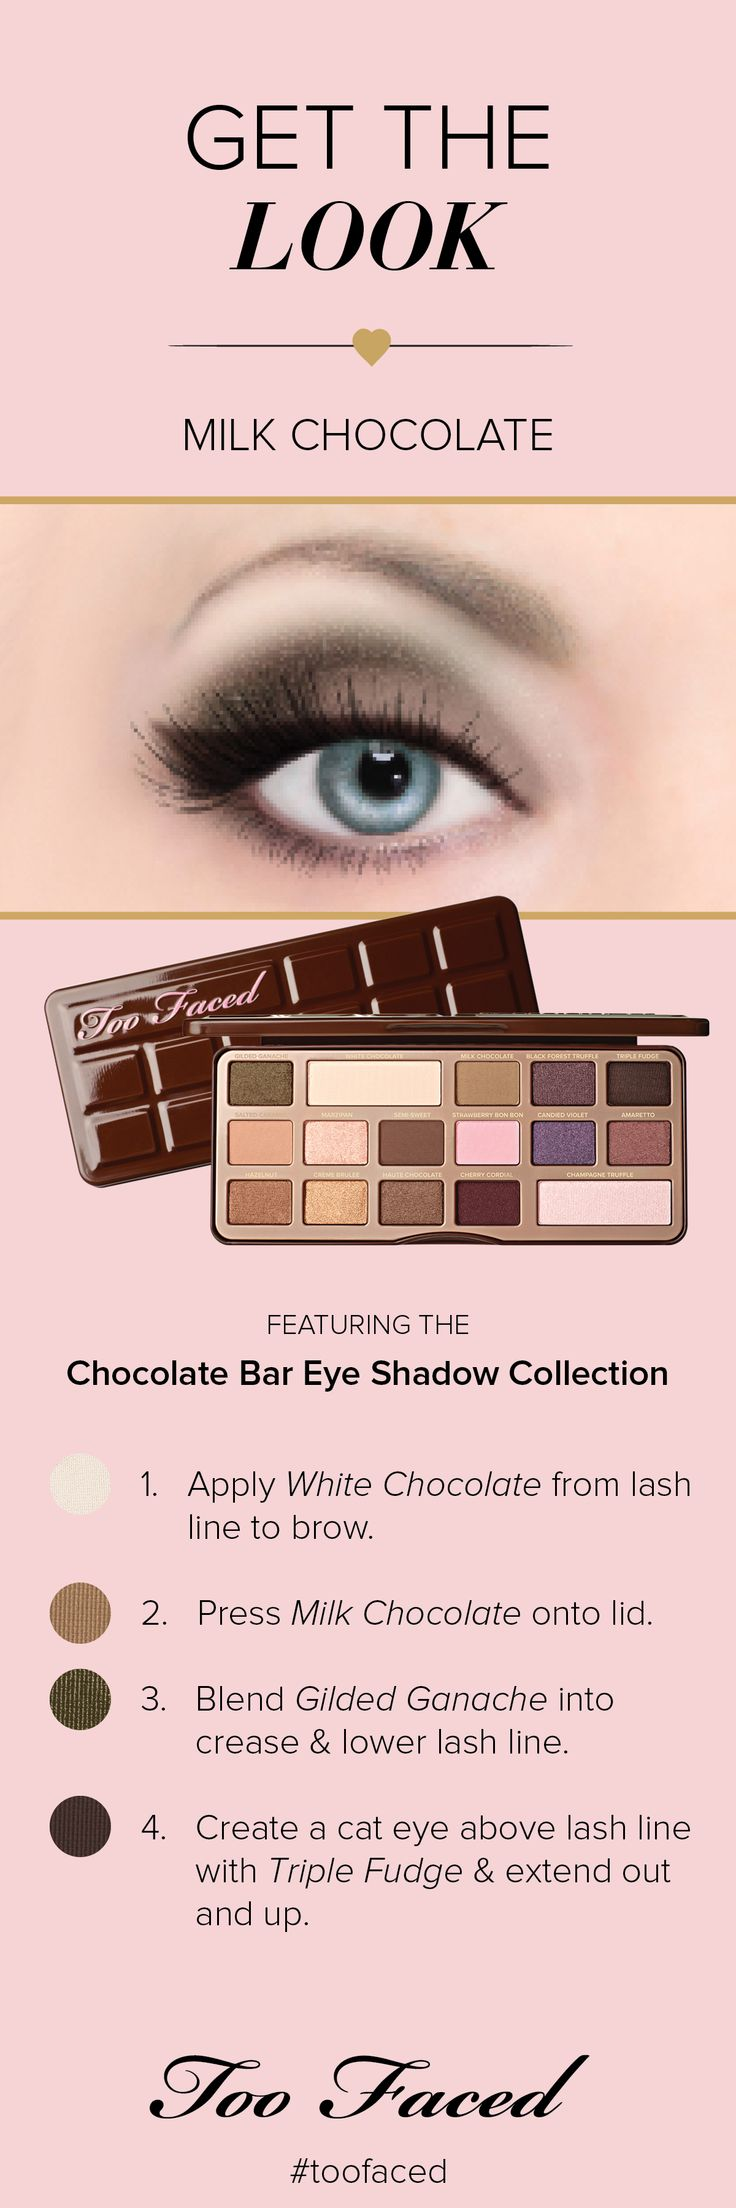 Get this perfect fall, Milk Chocolate look with the Too Faced Chocolate Bar Eye Shadow Collection! #UltaTrendAlert #toofaced